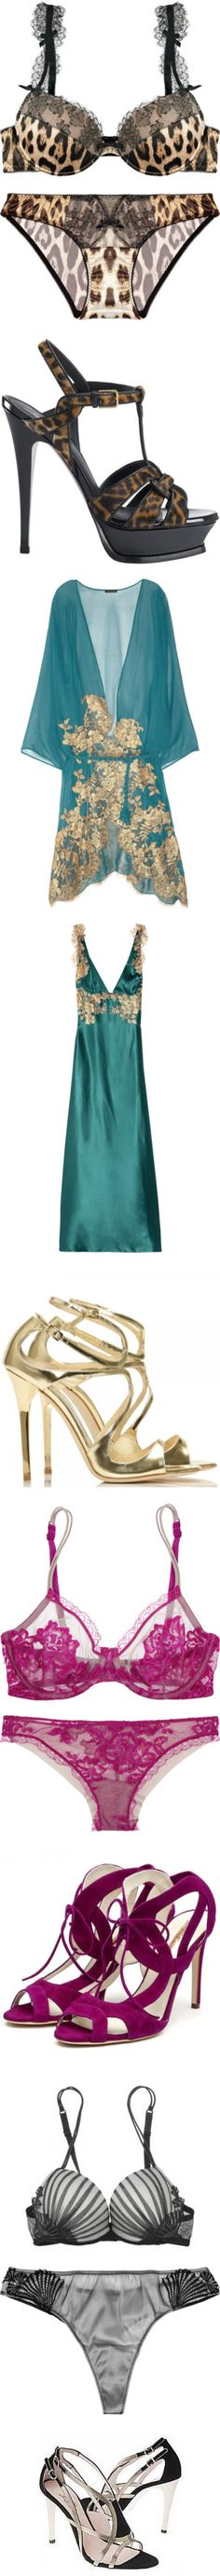 """Lengerie"" by desyderia ❤ liked on Polyvore"